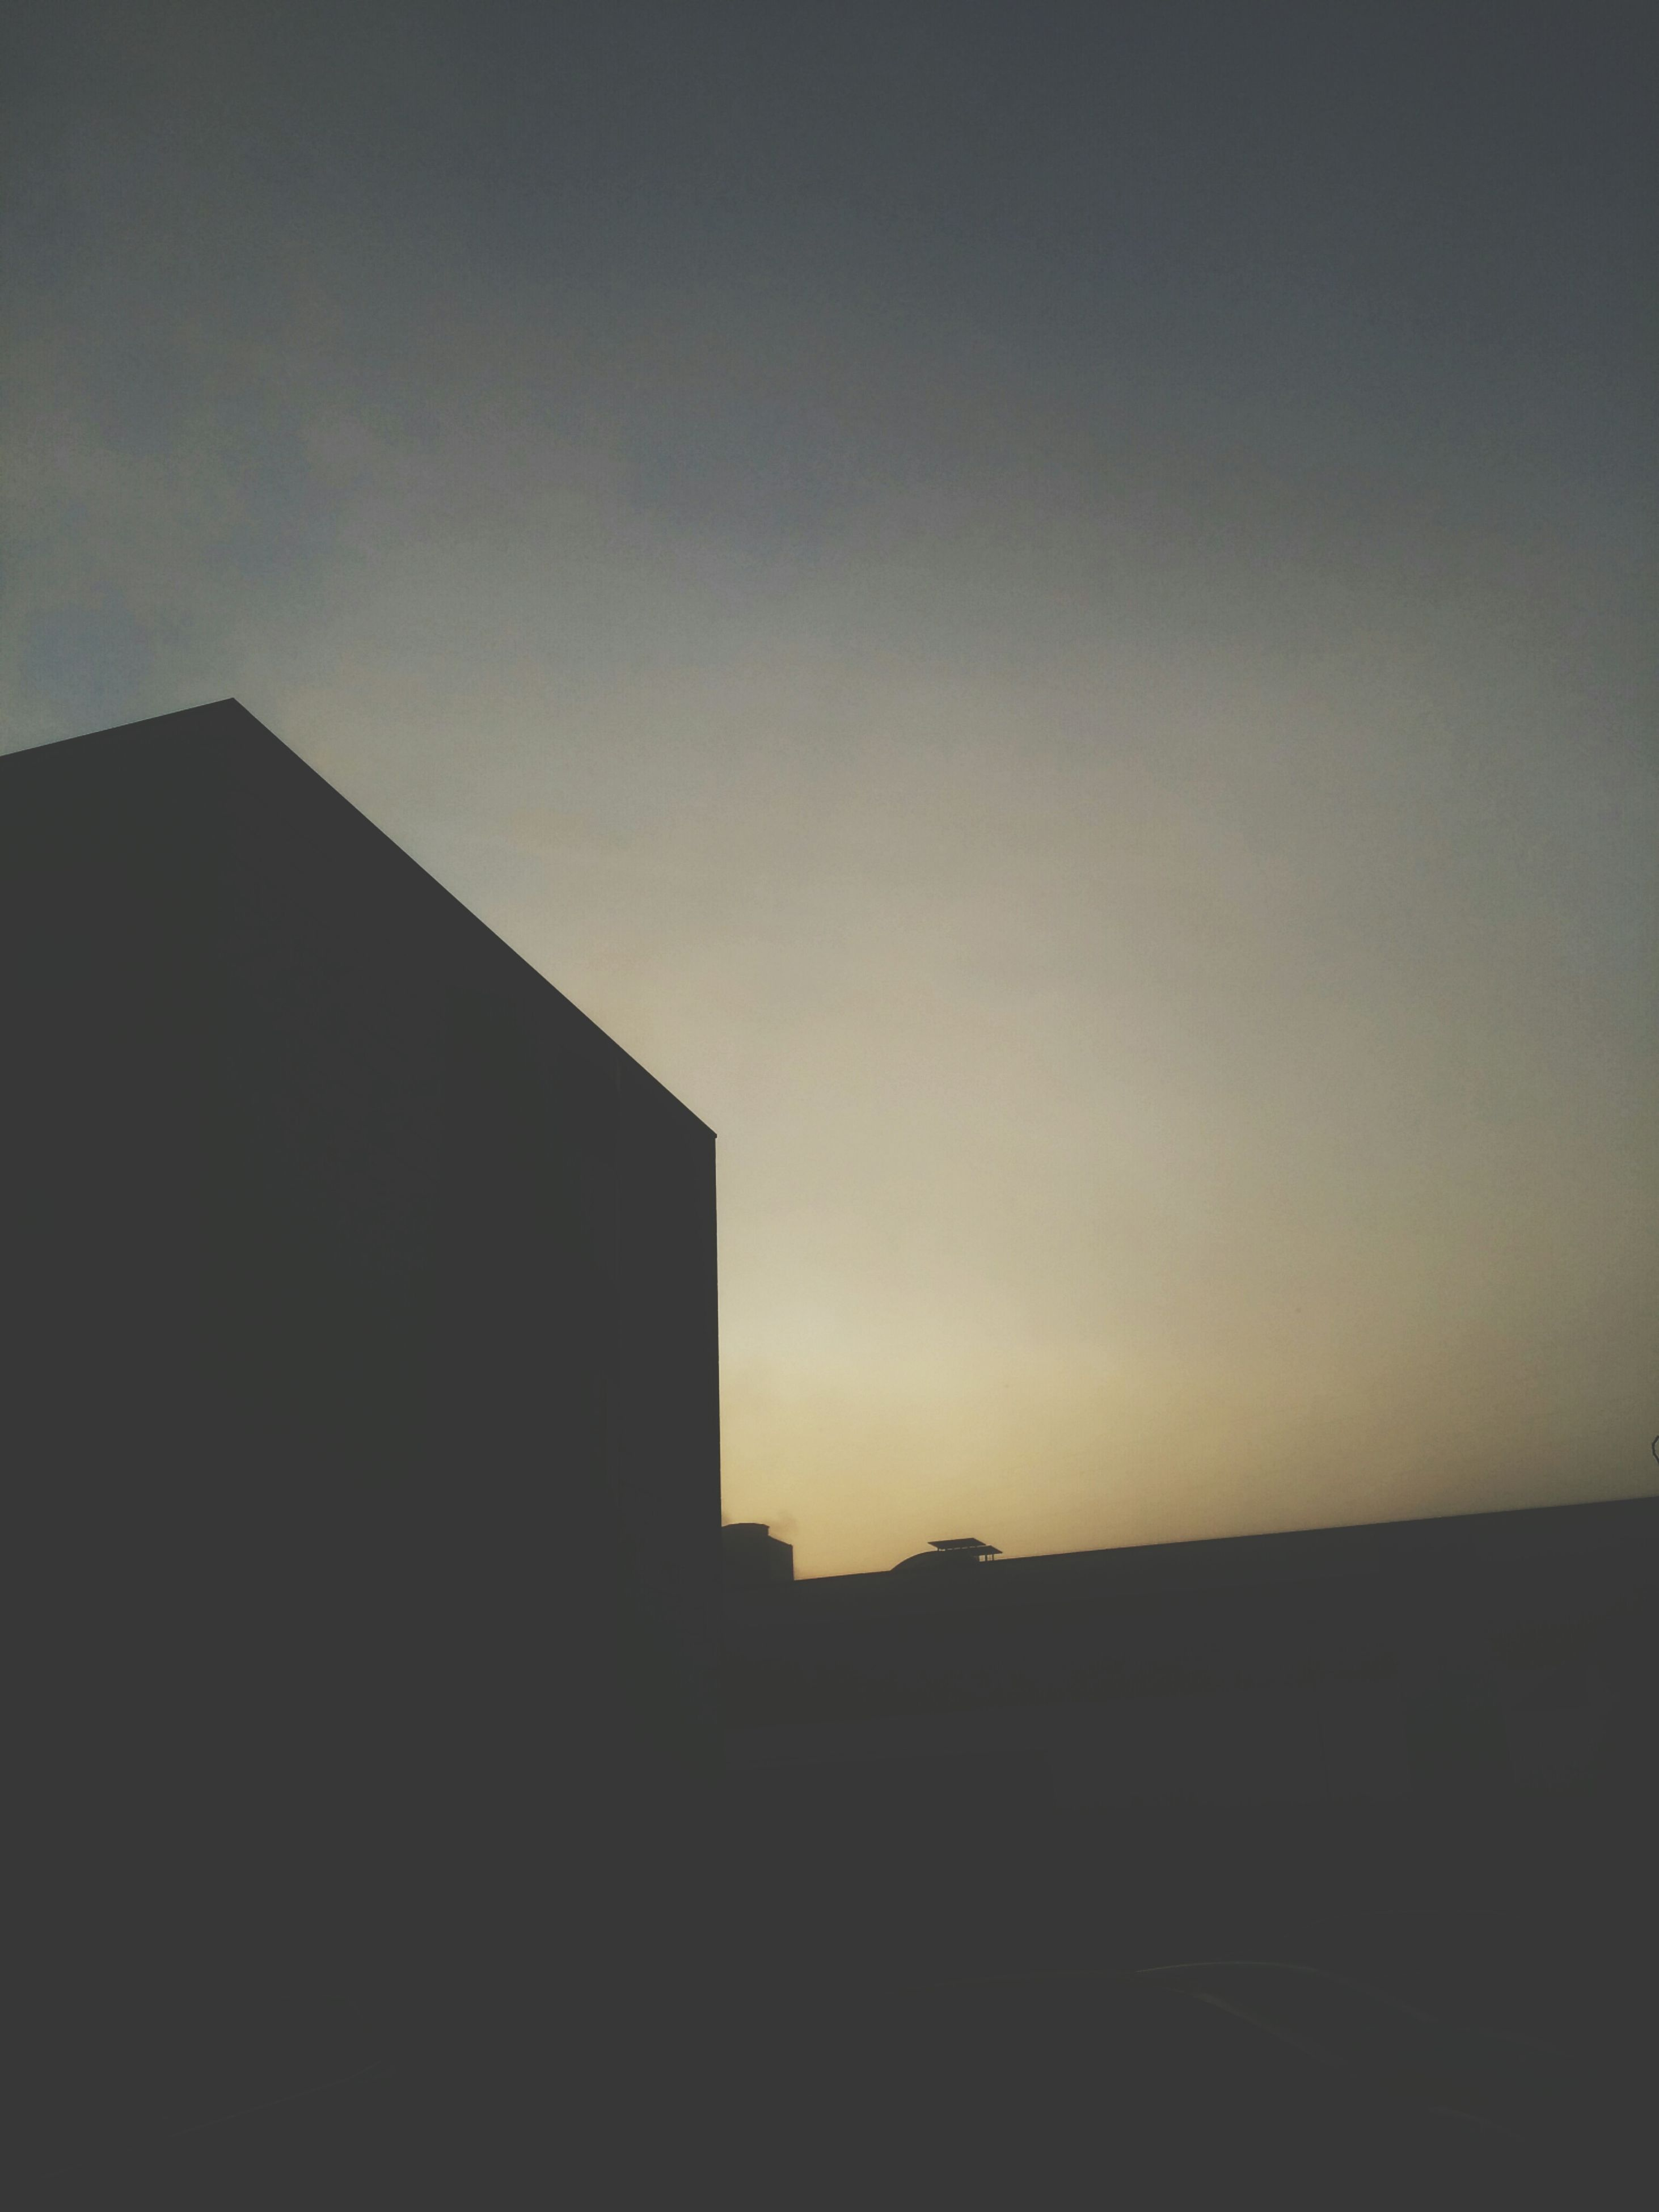 architecture, built structure, copy space, building exterior, silhouette, sunset, clear sky, sky, low angle view, building, residential structure, house, outdoors, no people, dark, residential building, city, dusk, nature, orange color